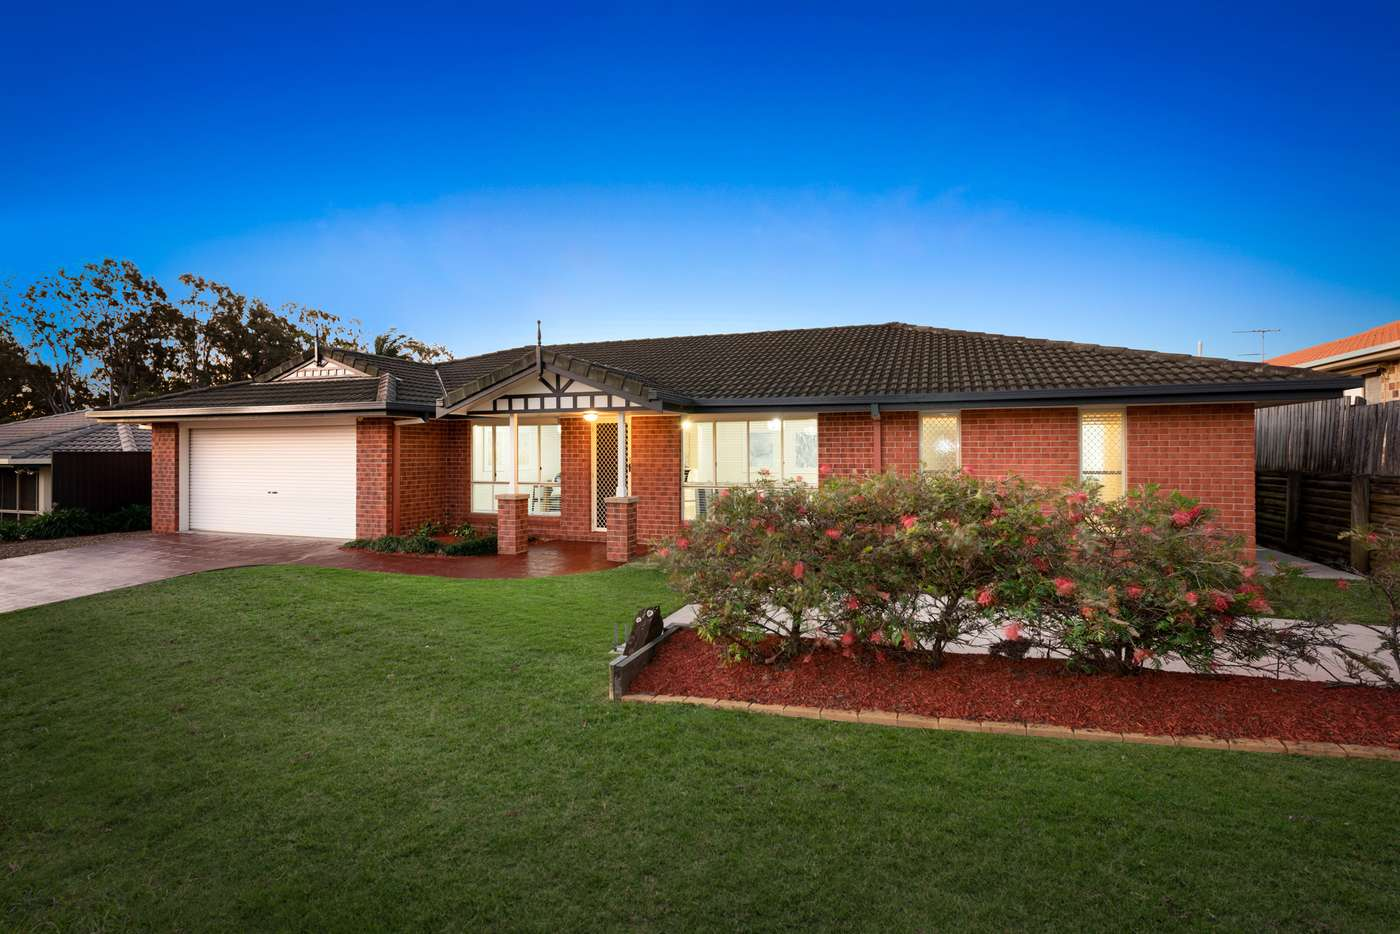 Main view of Homely house listing, 10 Harrogate Terrace, Birkdale QLD 4159